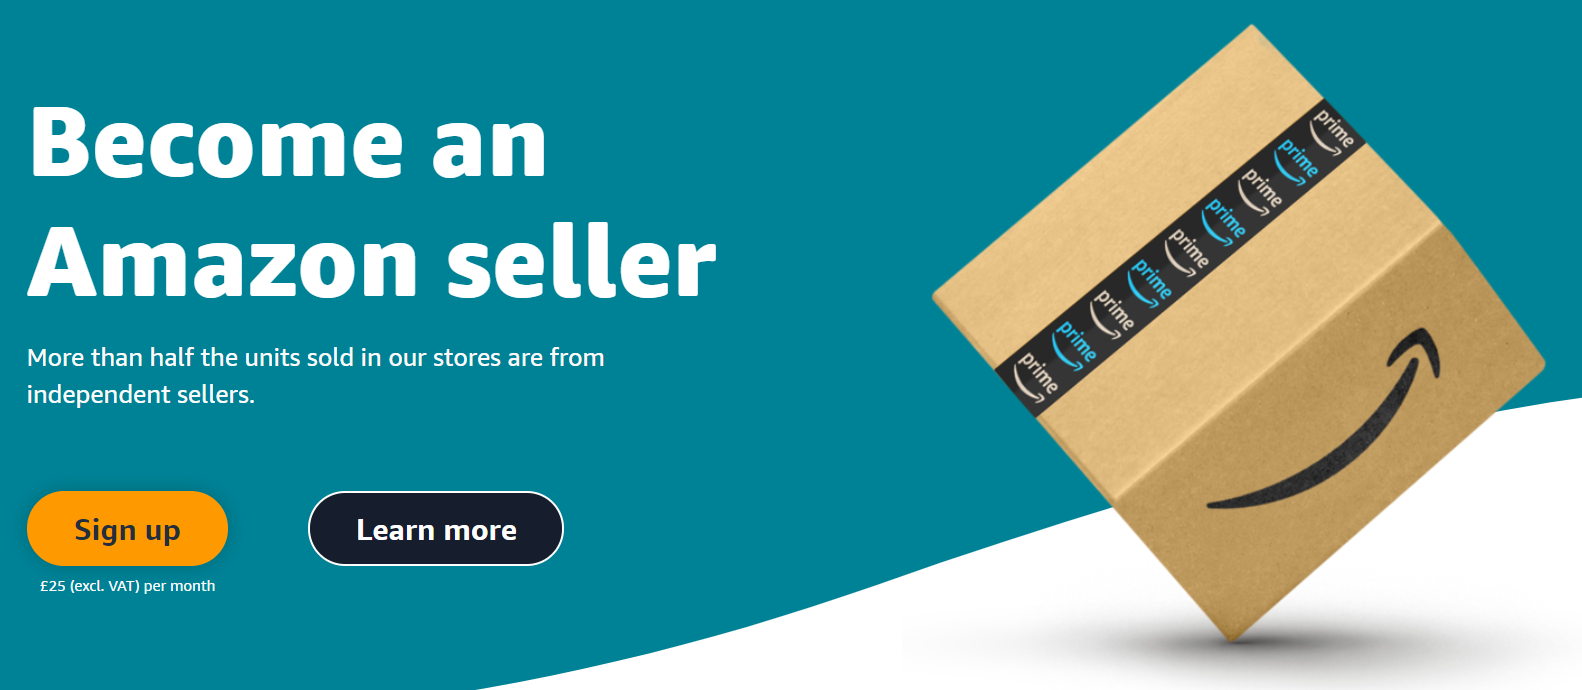 Screenshot of Amazon advertising its platform for independent sellers.